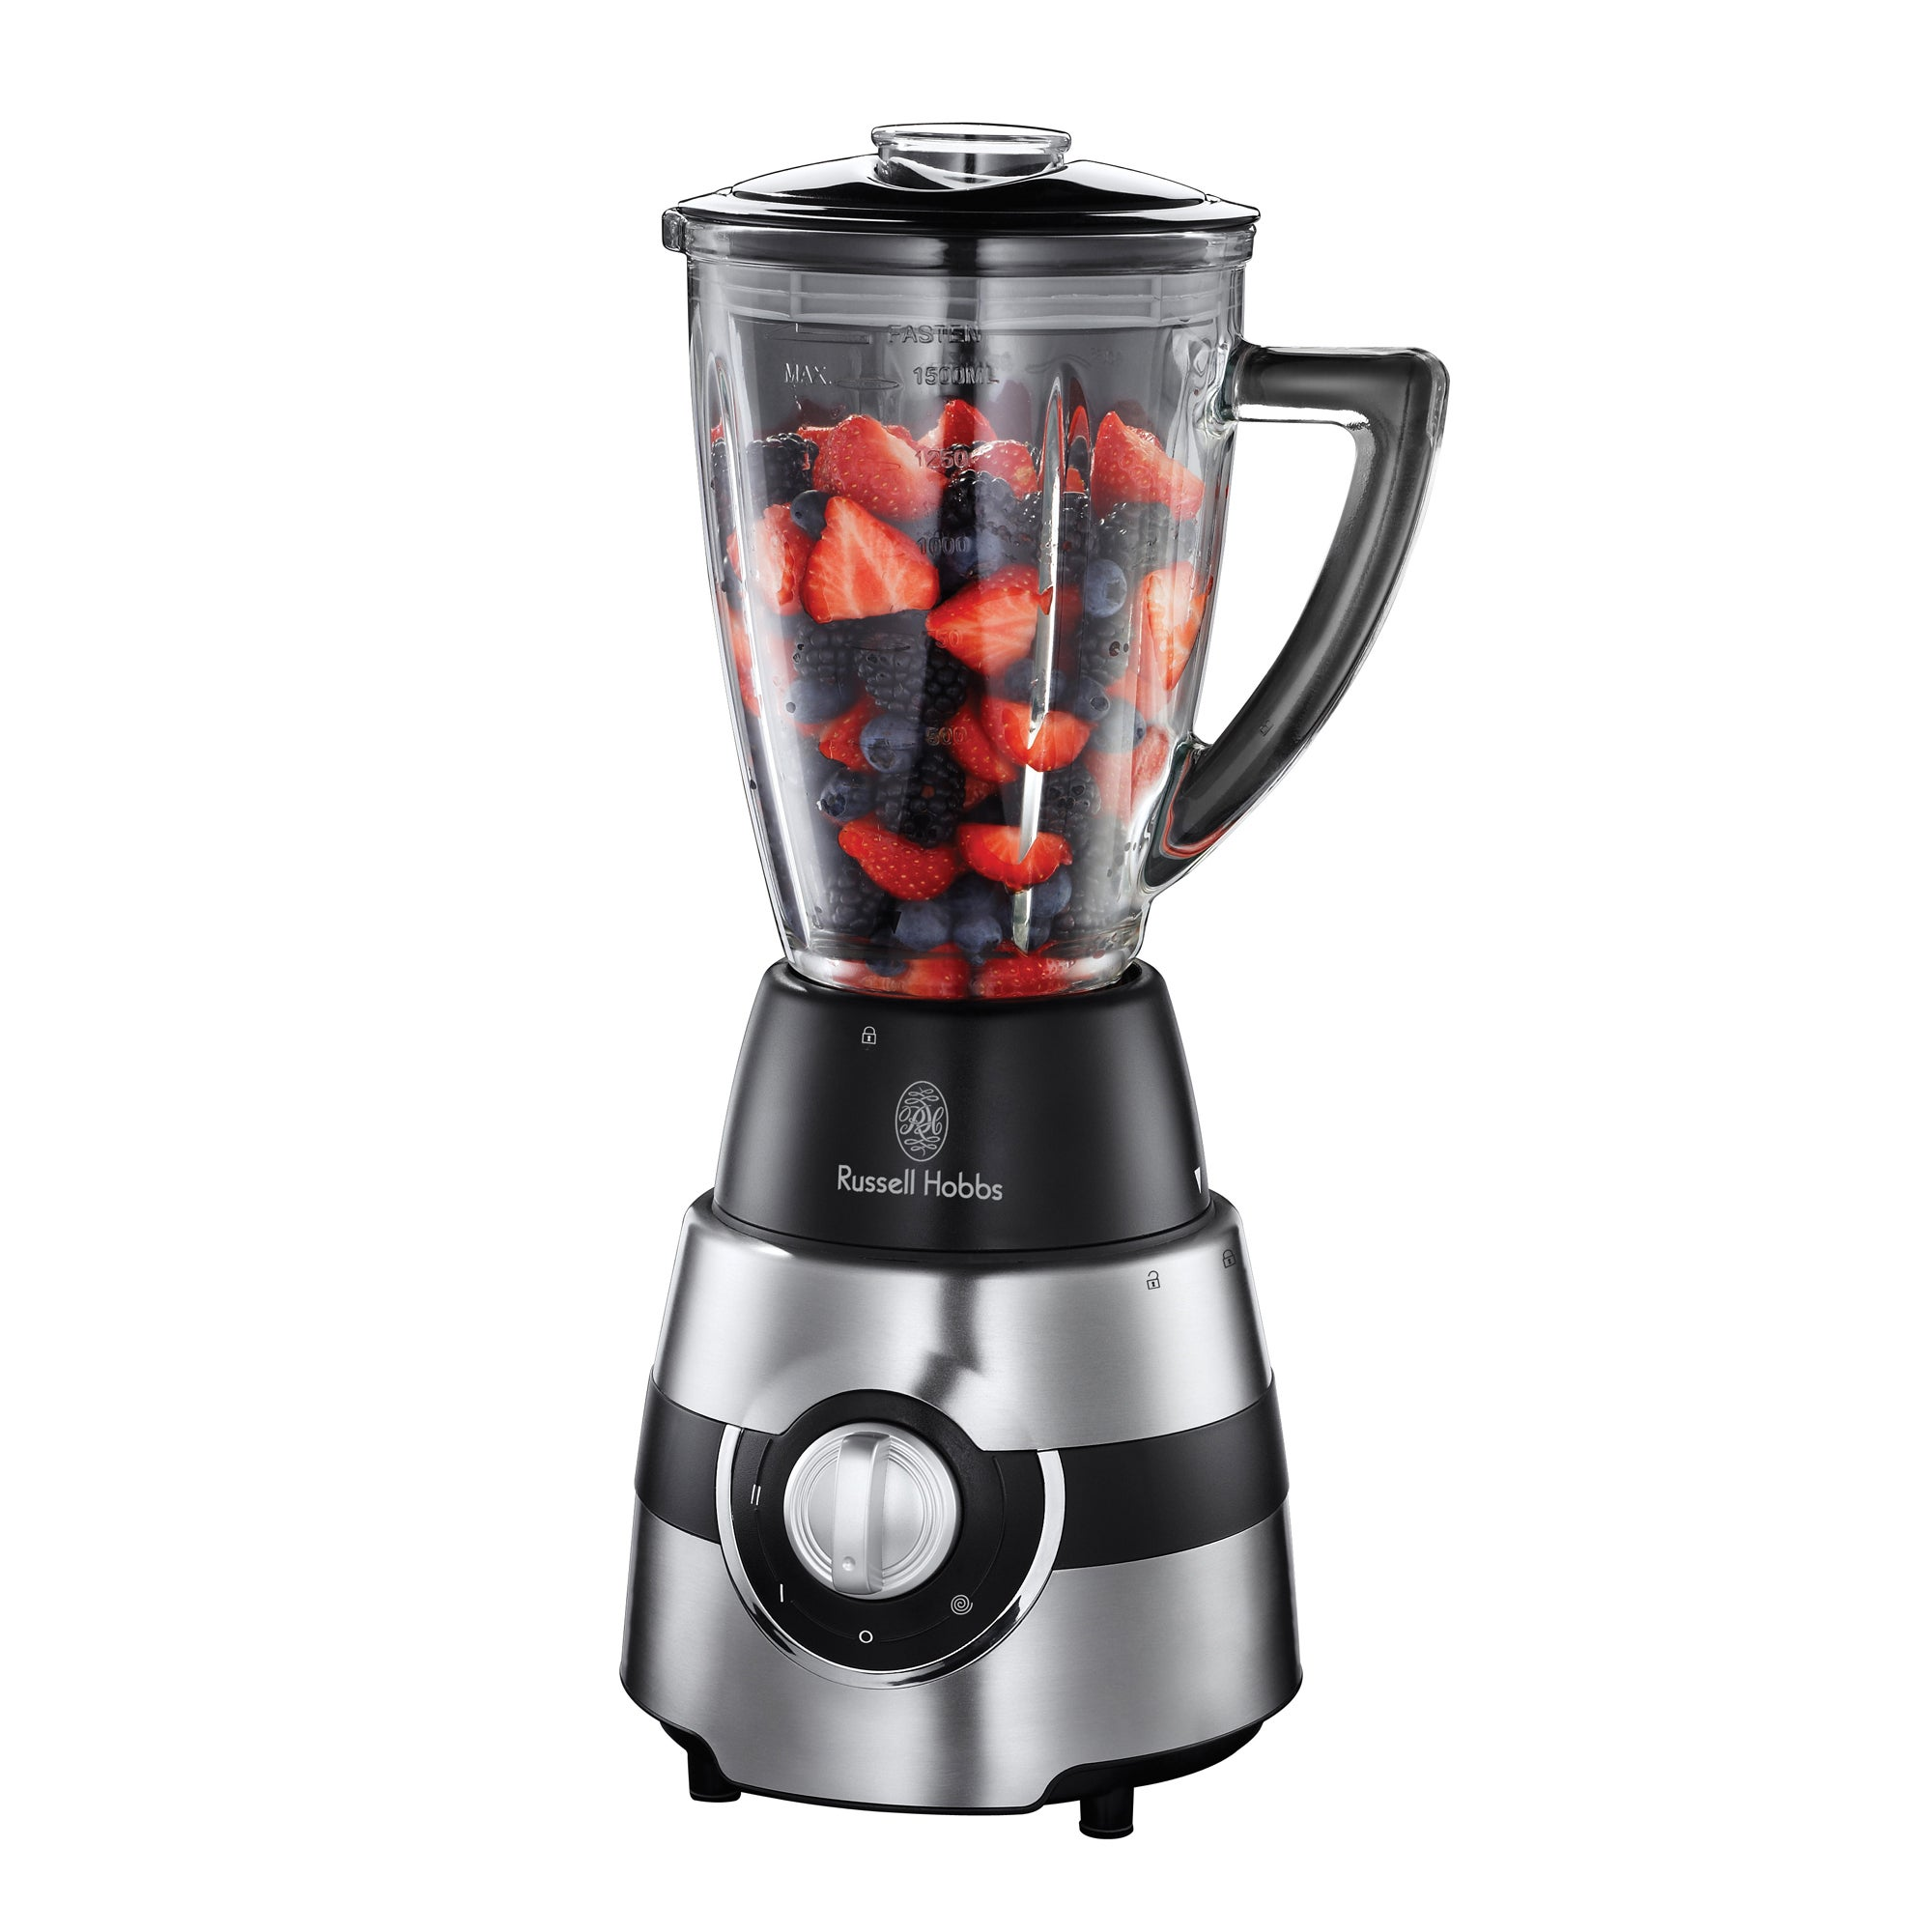 Russell Hobbs 18087 Glass Blender